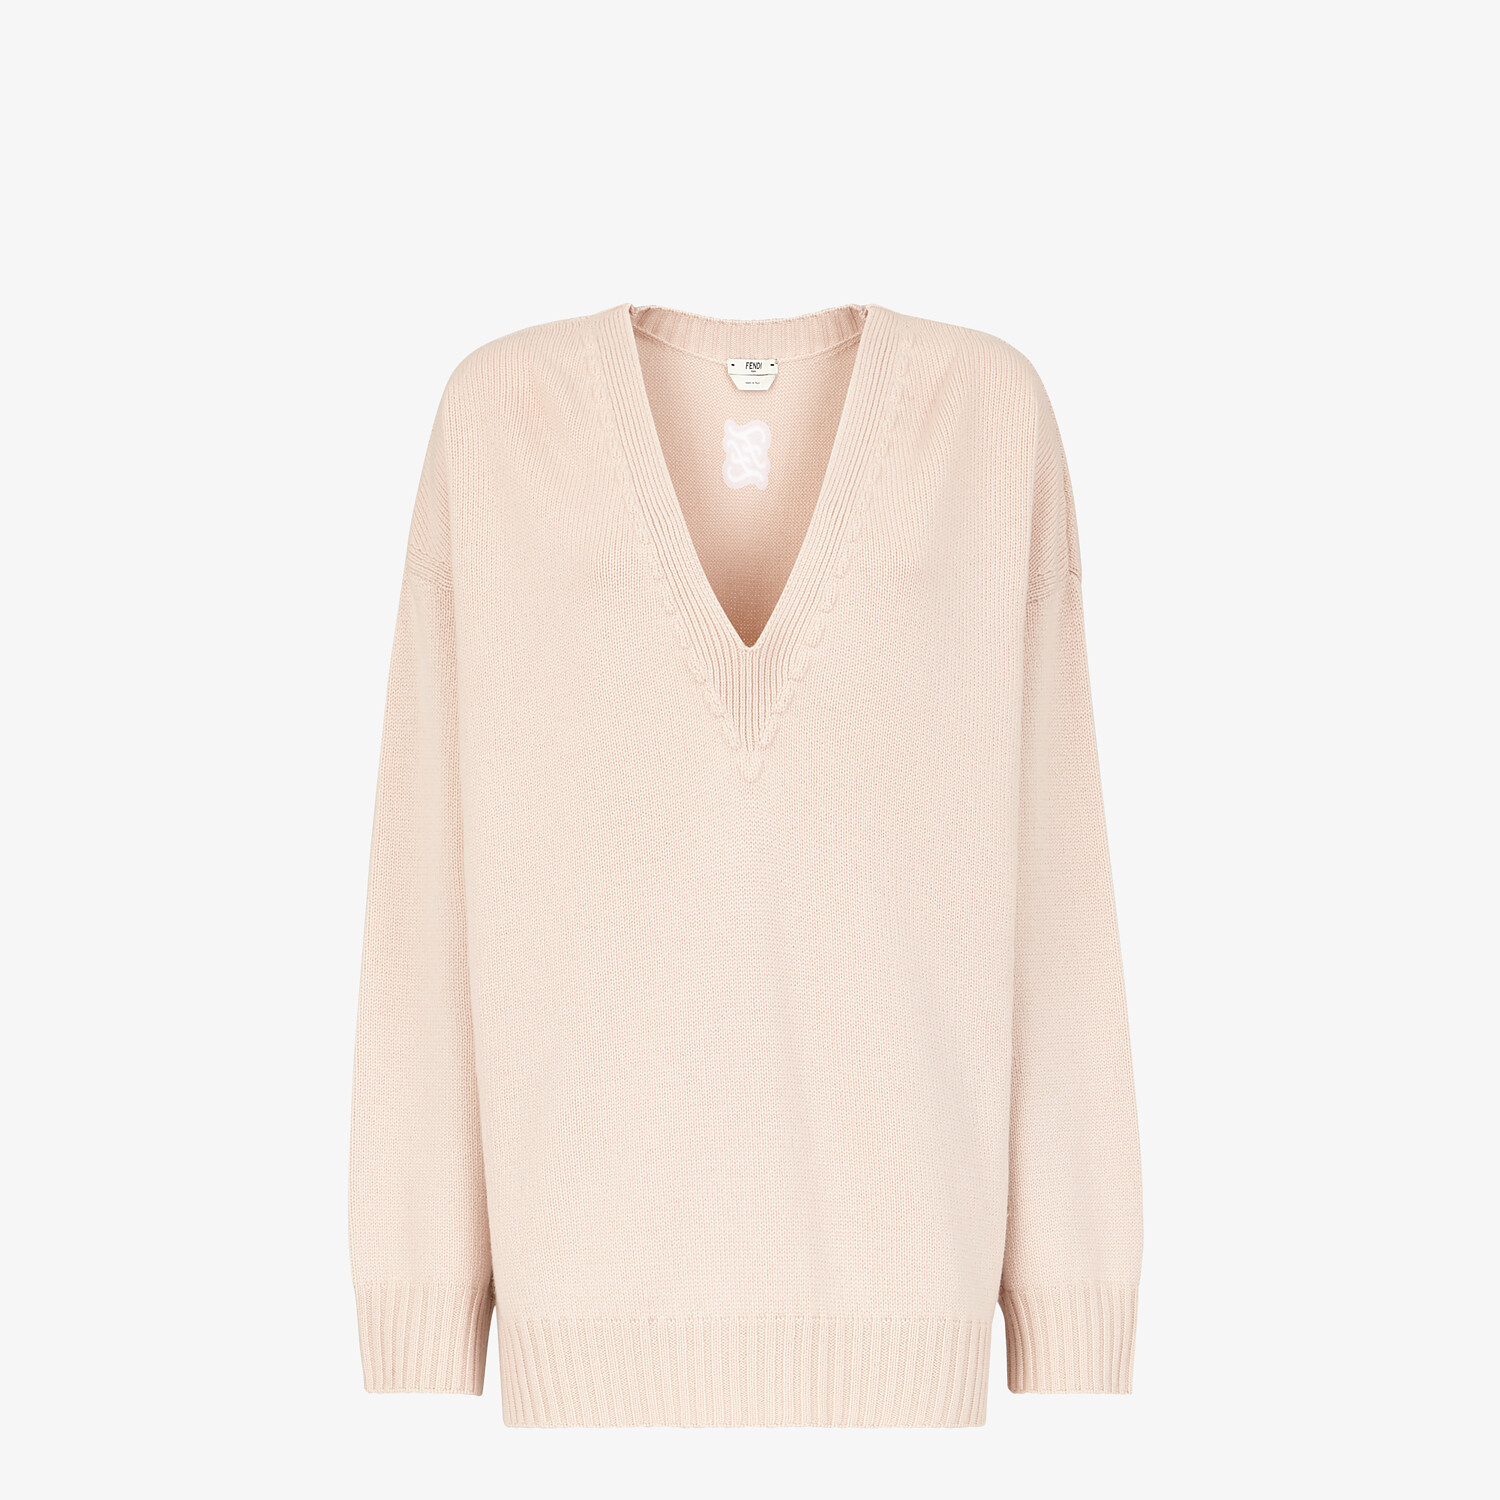 FENDI SWEATER - Pink cashmere sweater - view 1 detail